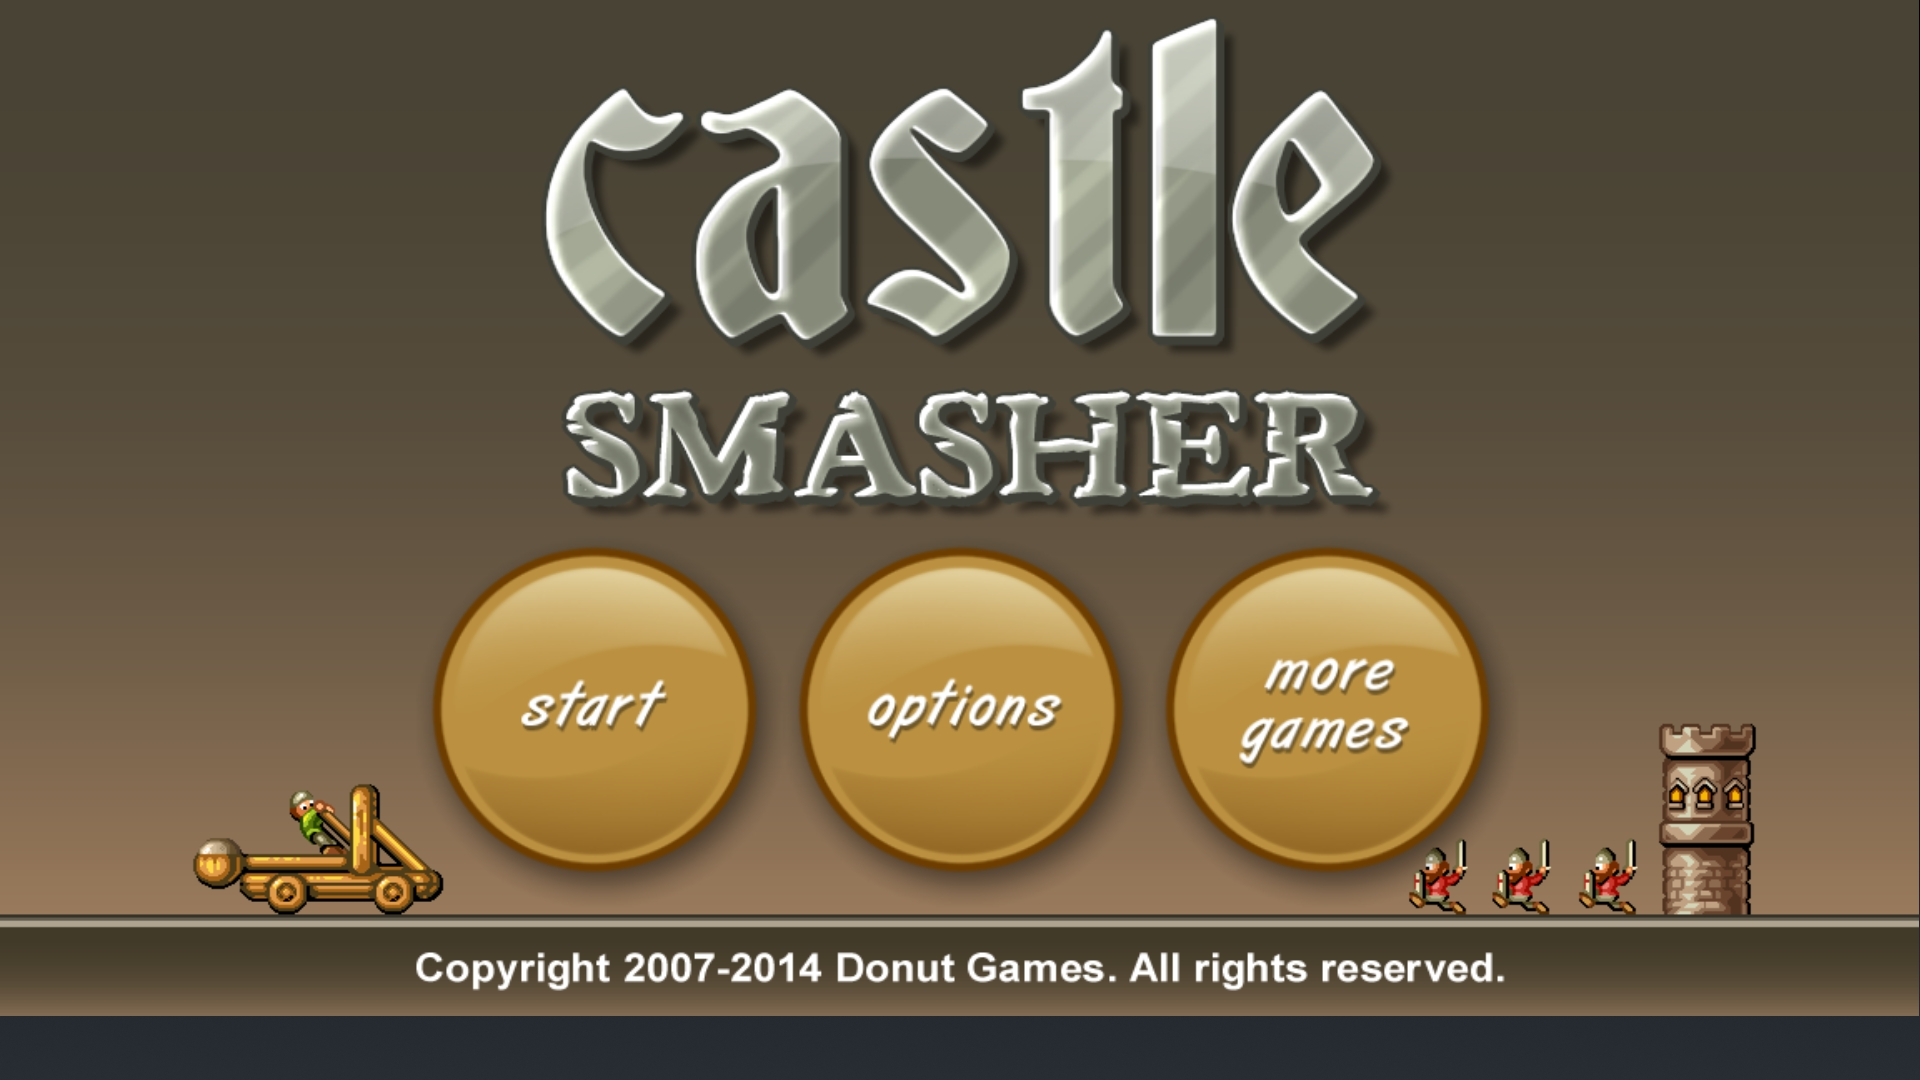 Bamse: Castle Smasher: Challenges: 12 Treasure Towers (Android) 54 points on 2019-08-21 17:13:41